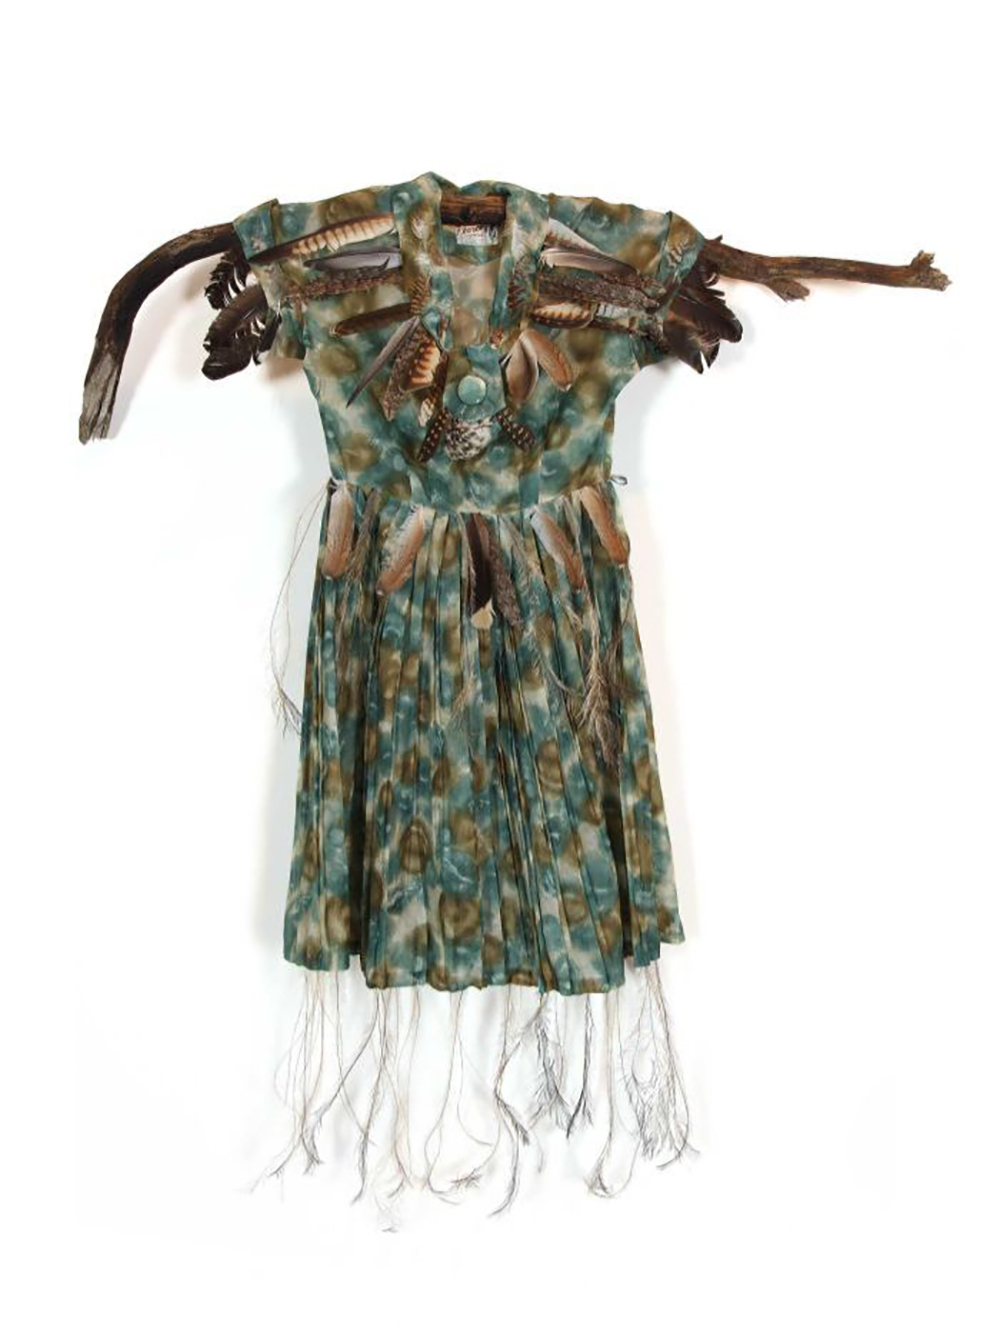 A vintage women's gown adorned with native Australian bird feathers is hung on a detached tree branch.